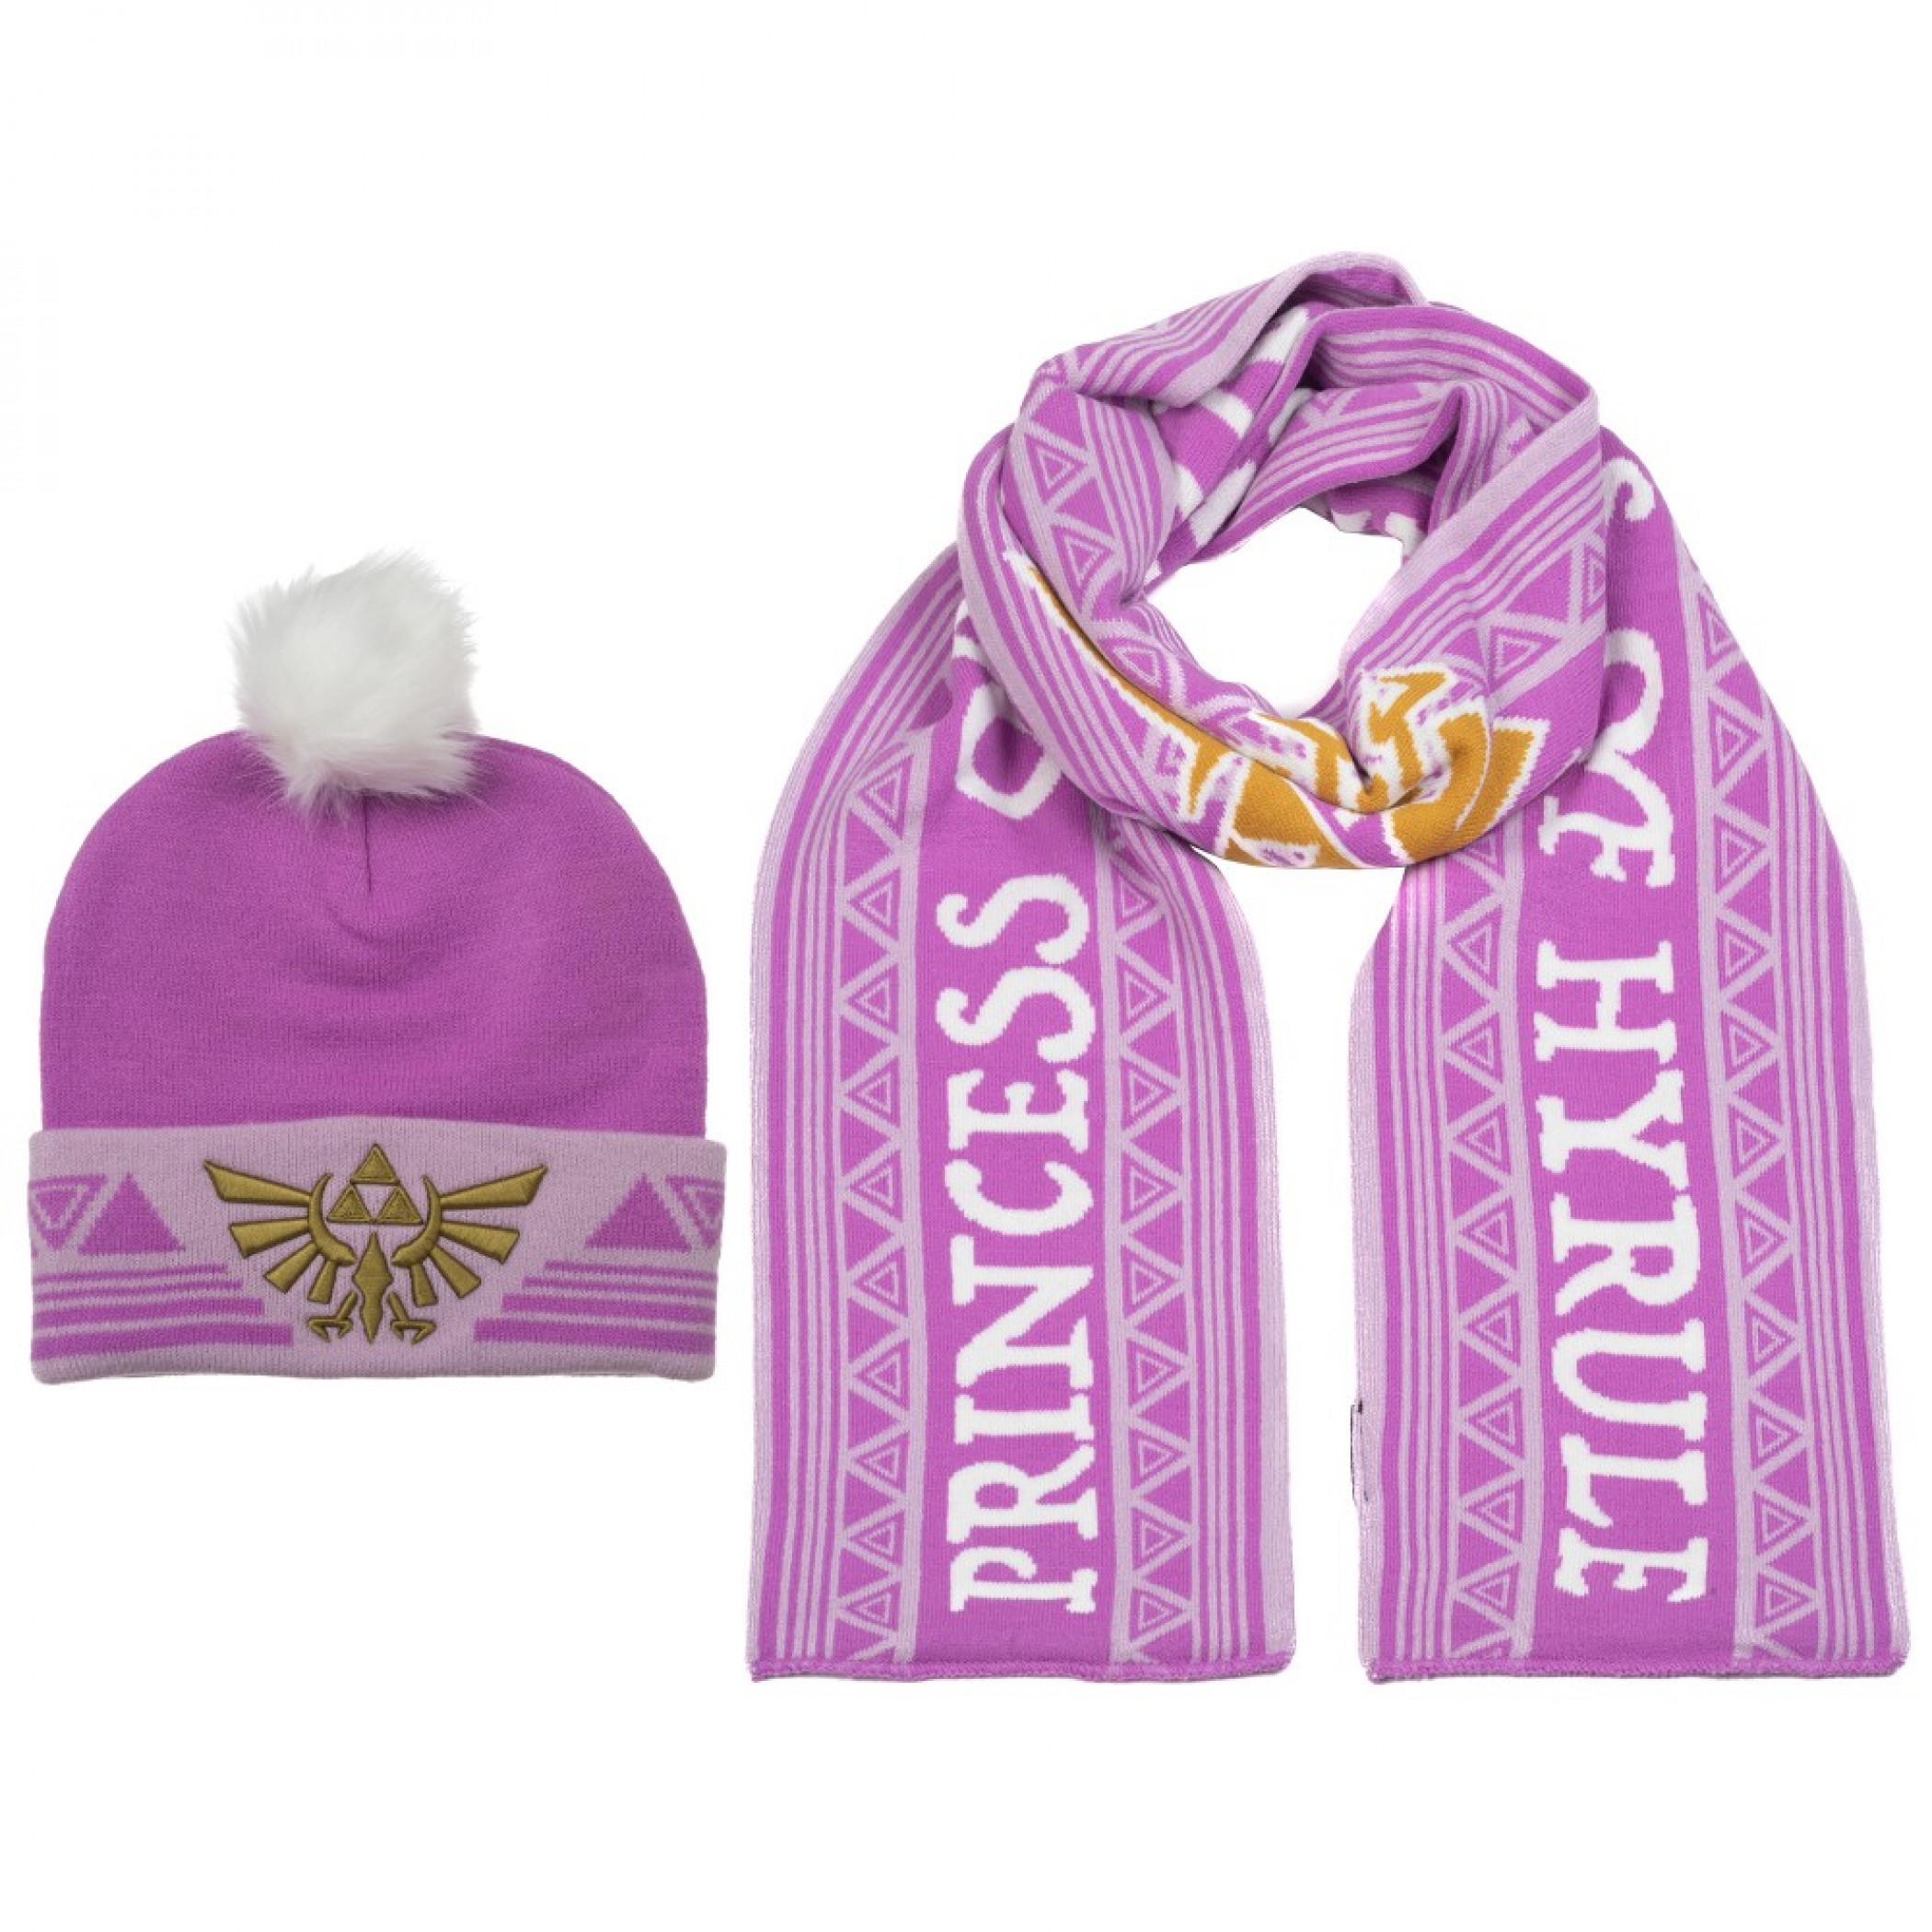 Zelda Twilight Princess Nintendo Symbol 2-Piece Beanie and Scarf Set